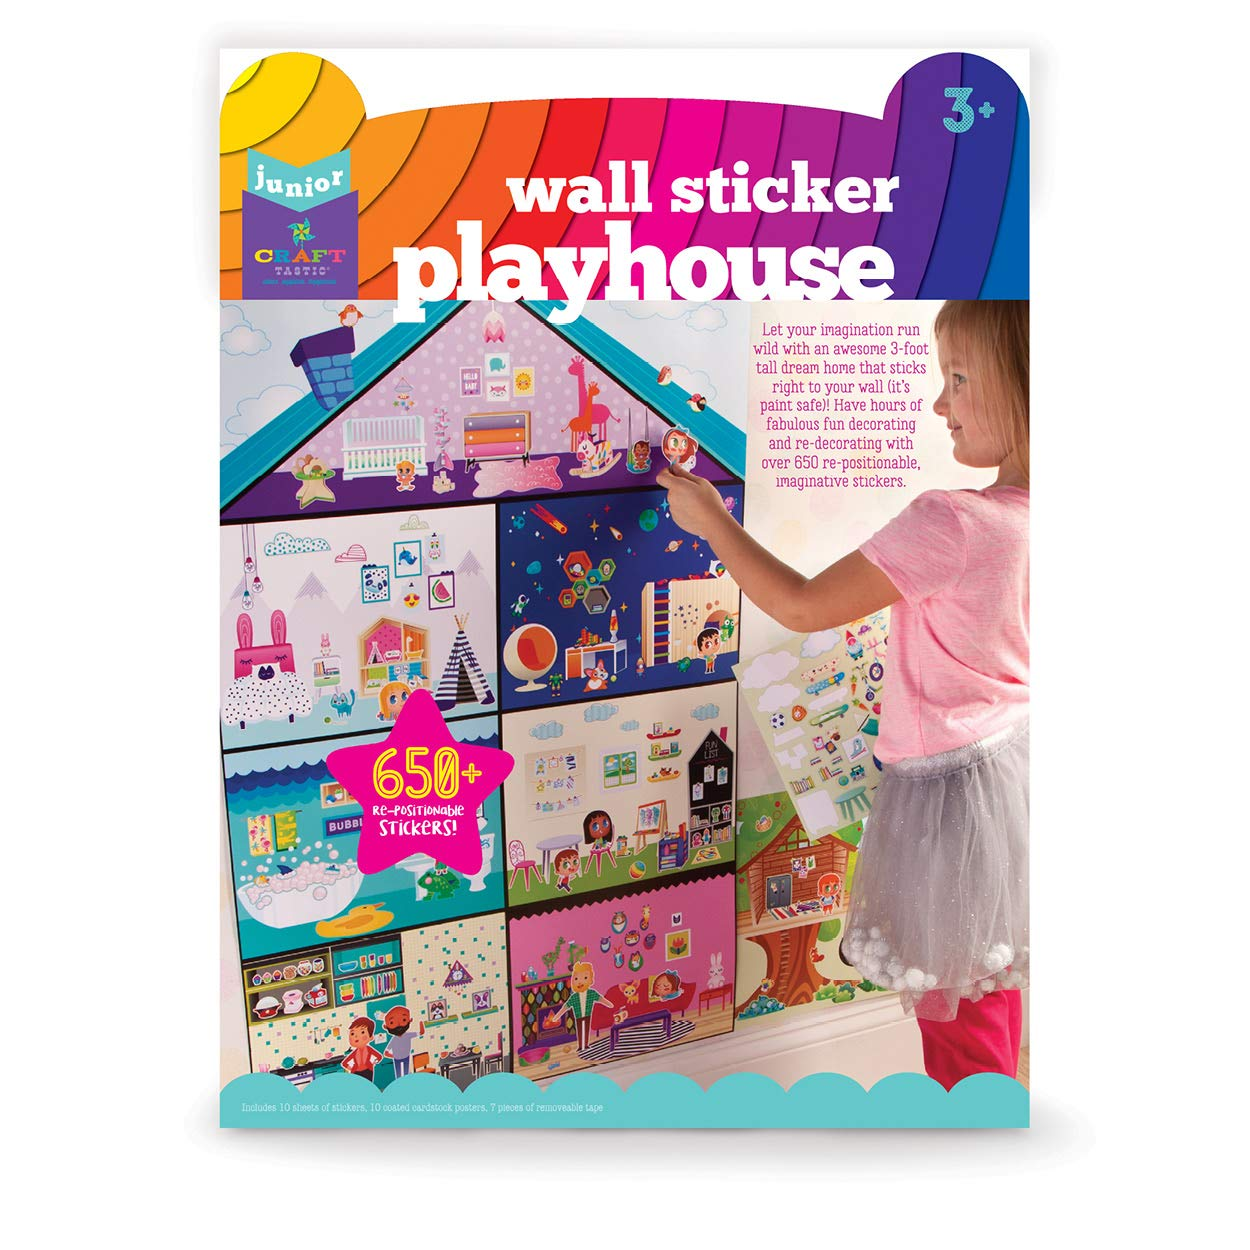 Craft tastic Jr – Wall Sticker Playhouse – 3 Foot Tall Dreamhouse with Over 650 Reusable Stickers